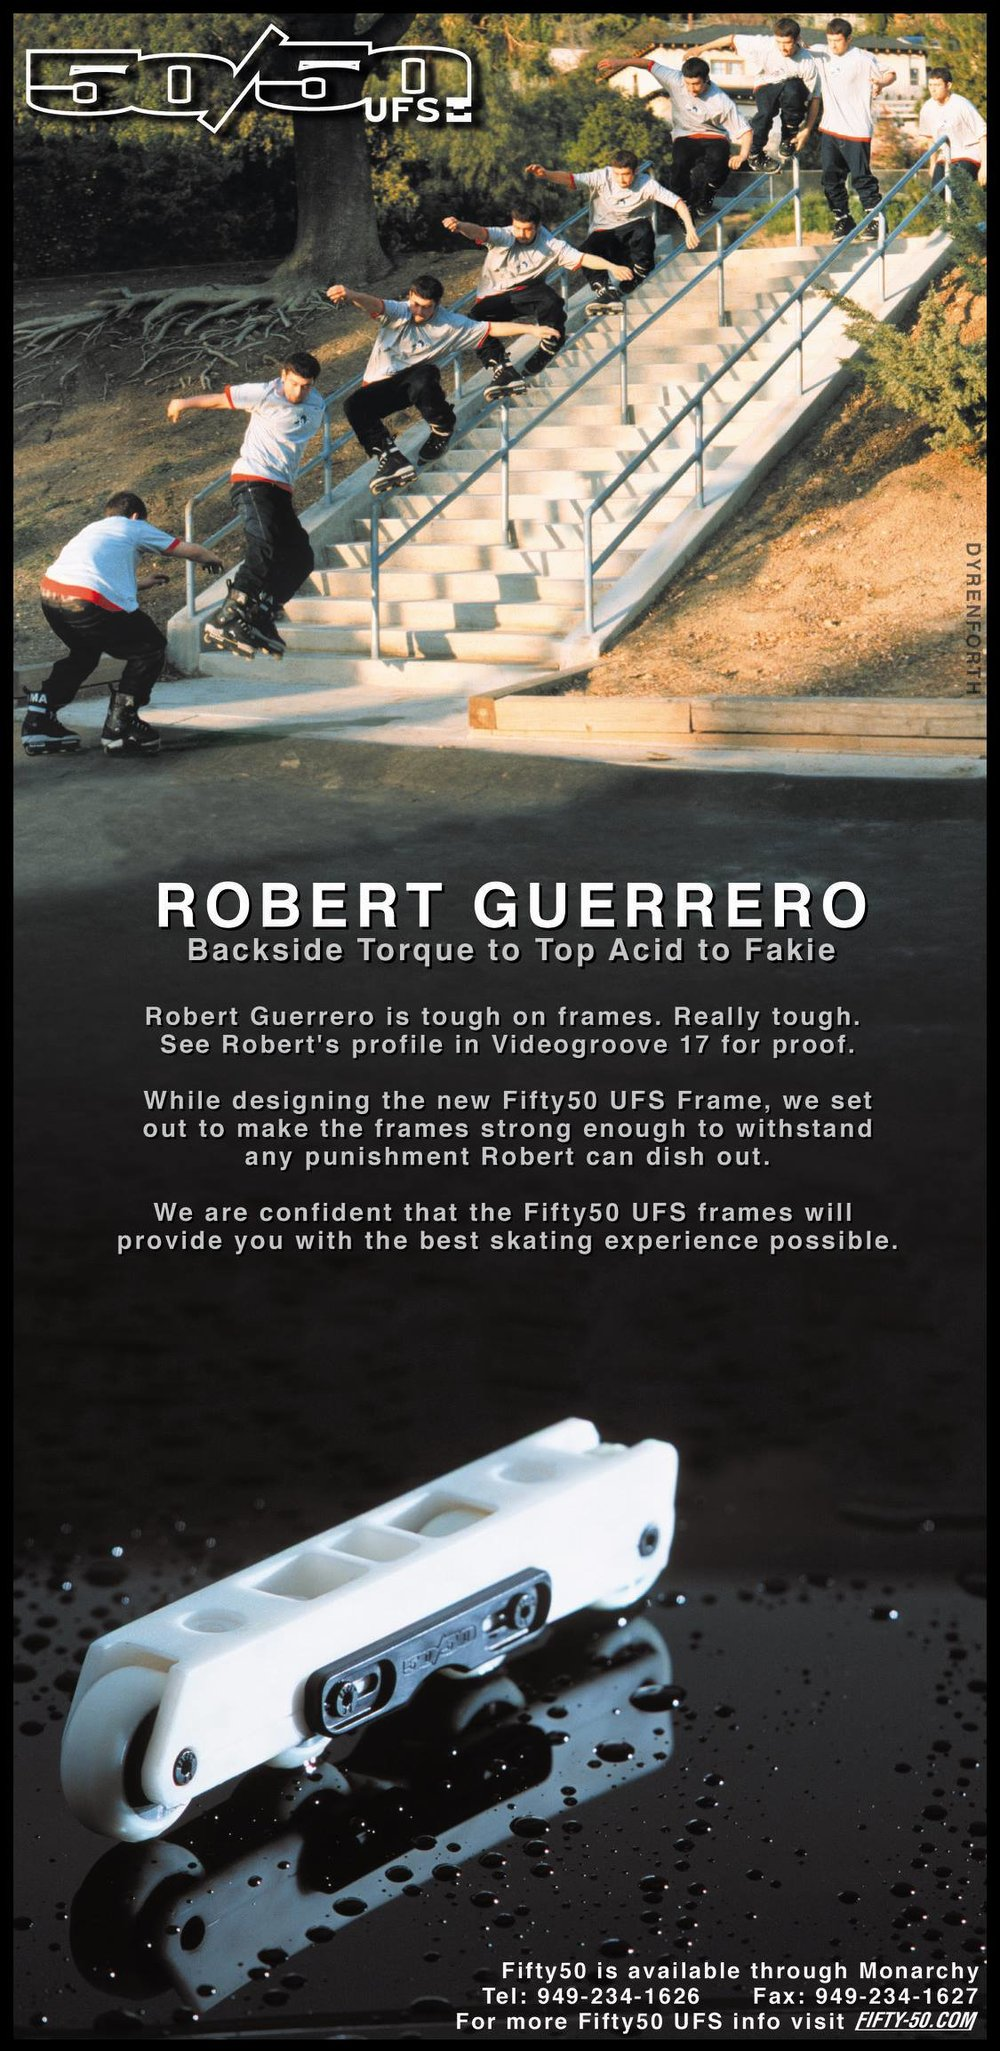 While we were making tweaks to the frames and working on the mold, this Robert Guerrero sequence ad hit right around his VG17 profile in Summer 2001.